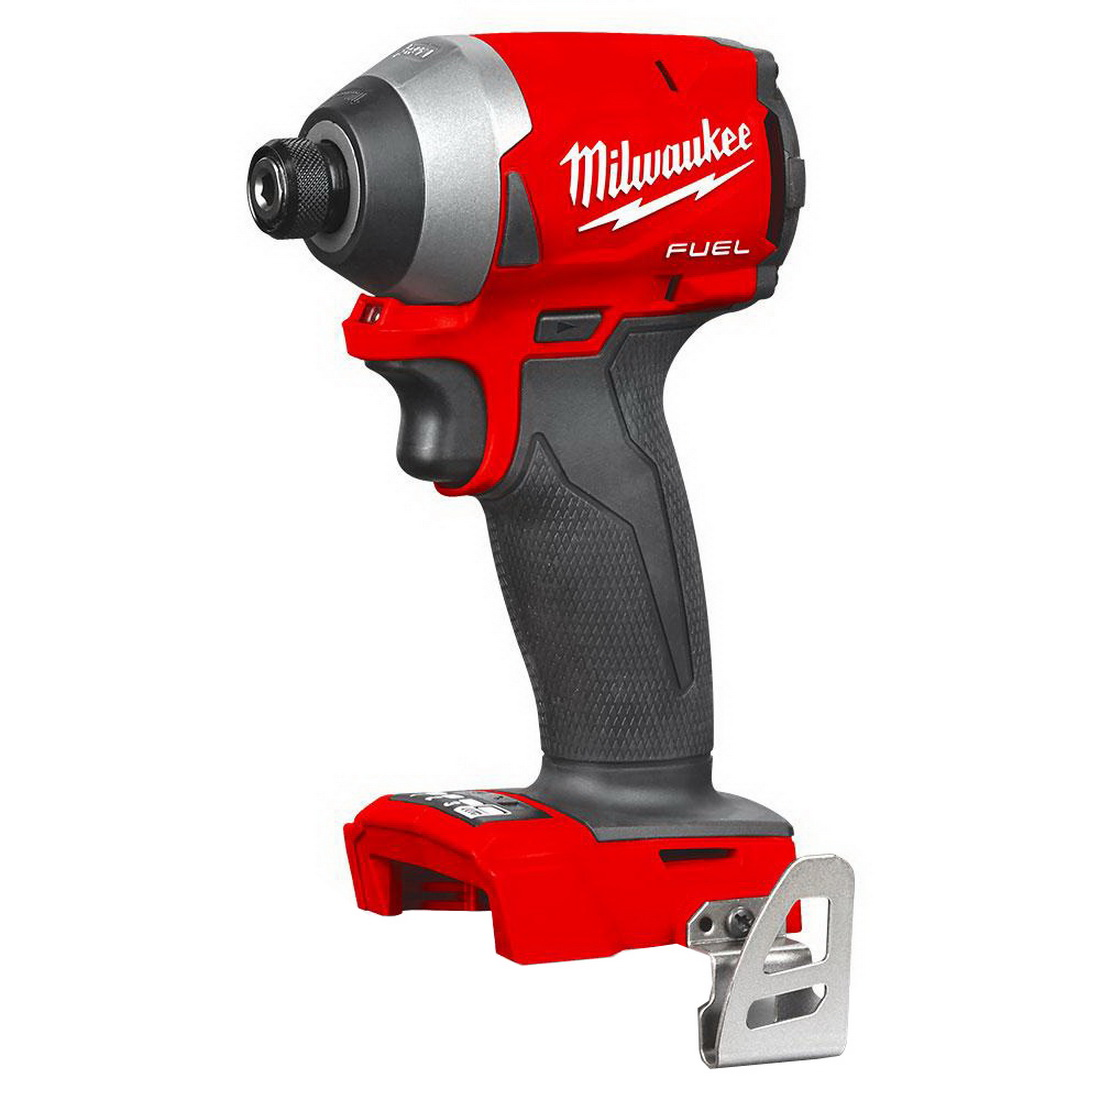 M18 FUEL Hex Impact Driver 1/4 inch (Tool Only)